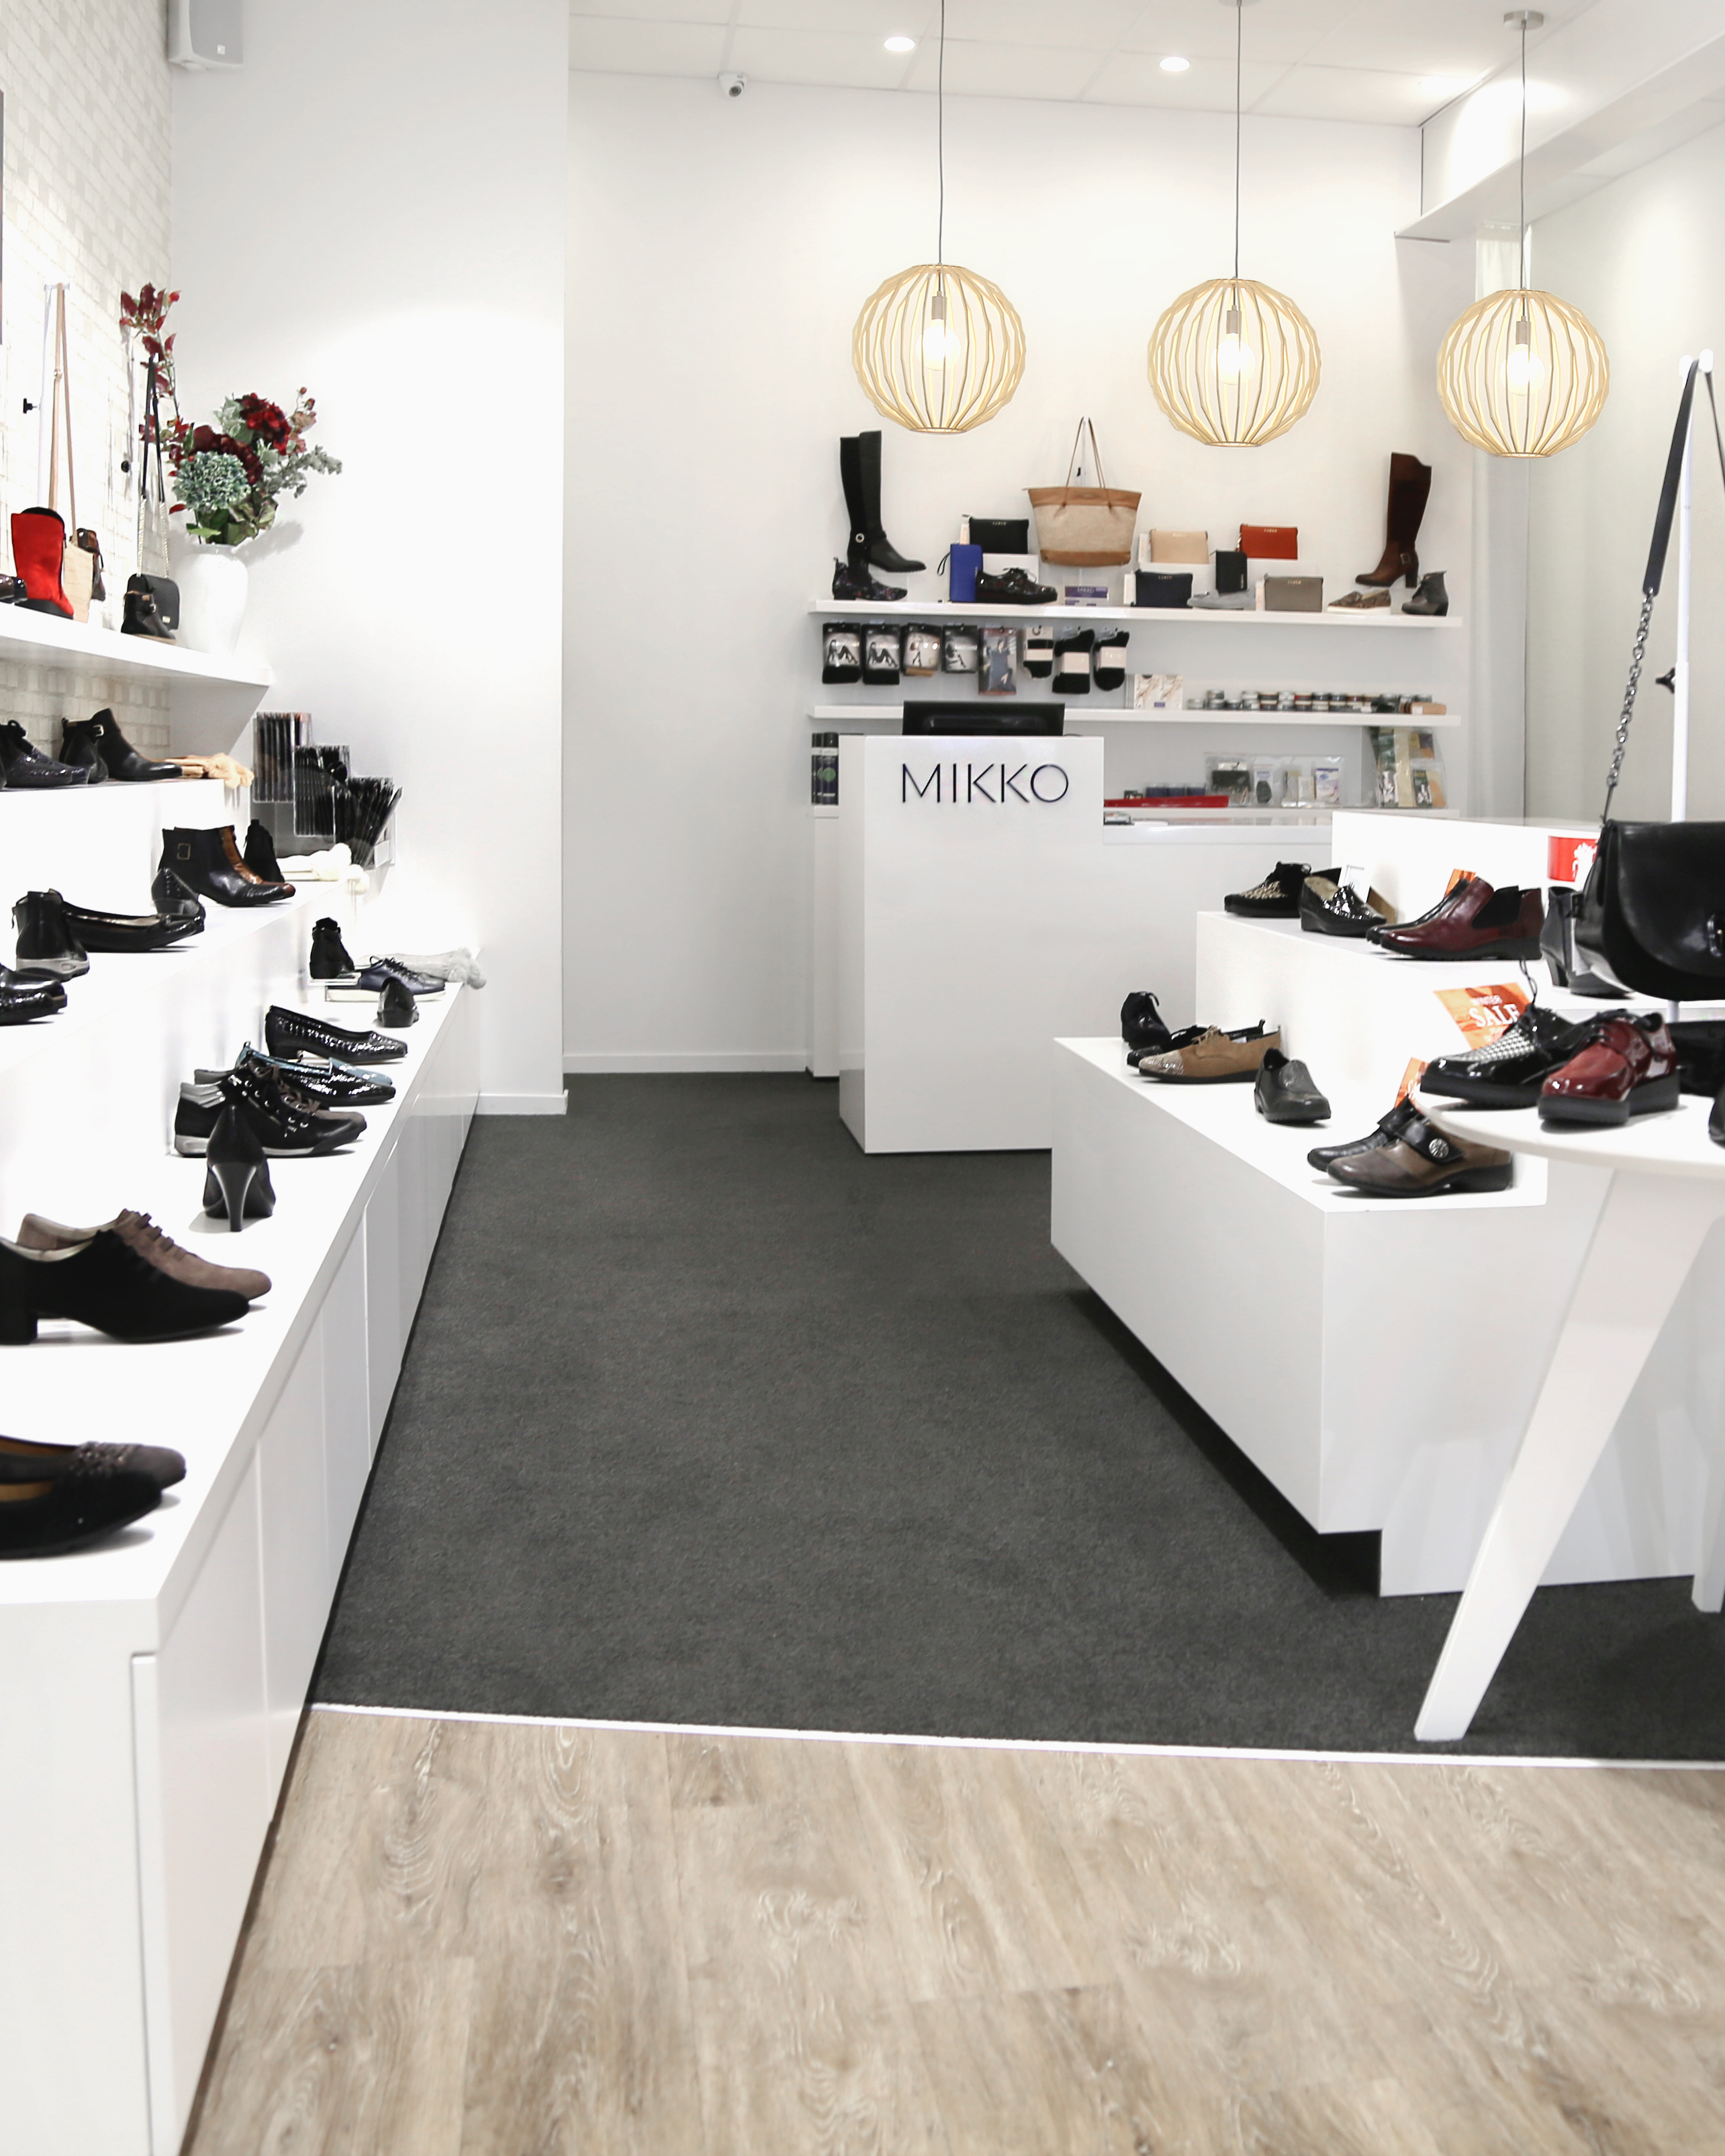 mikko shoes newmarket store